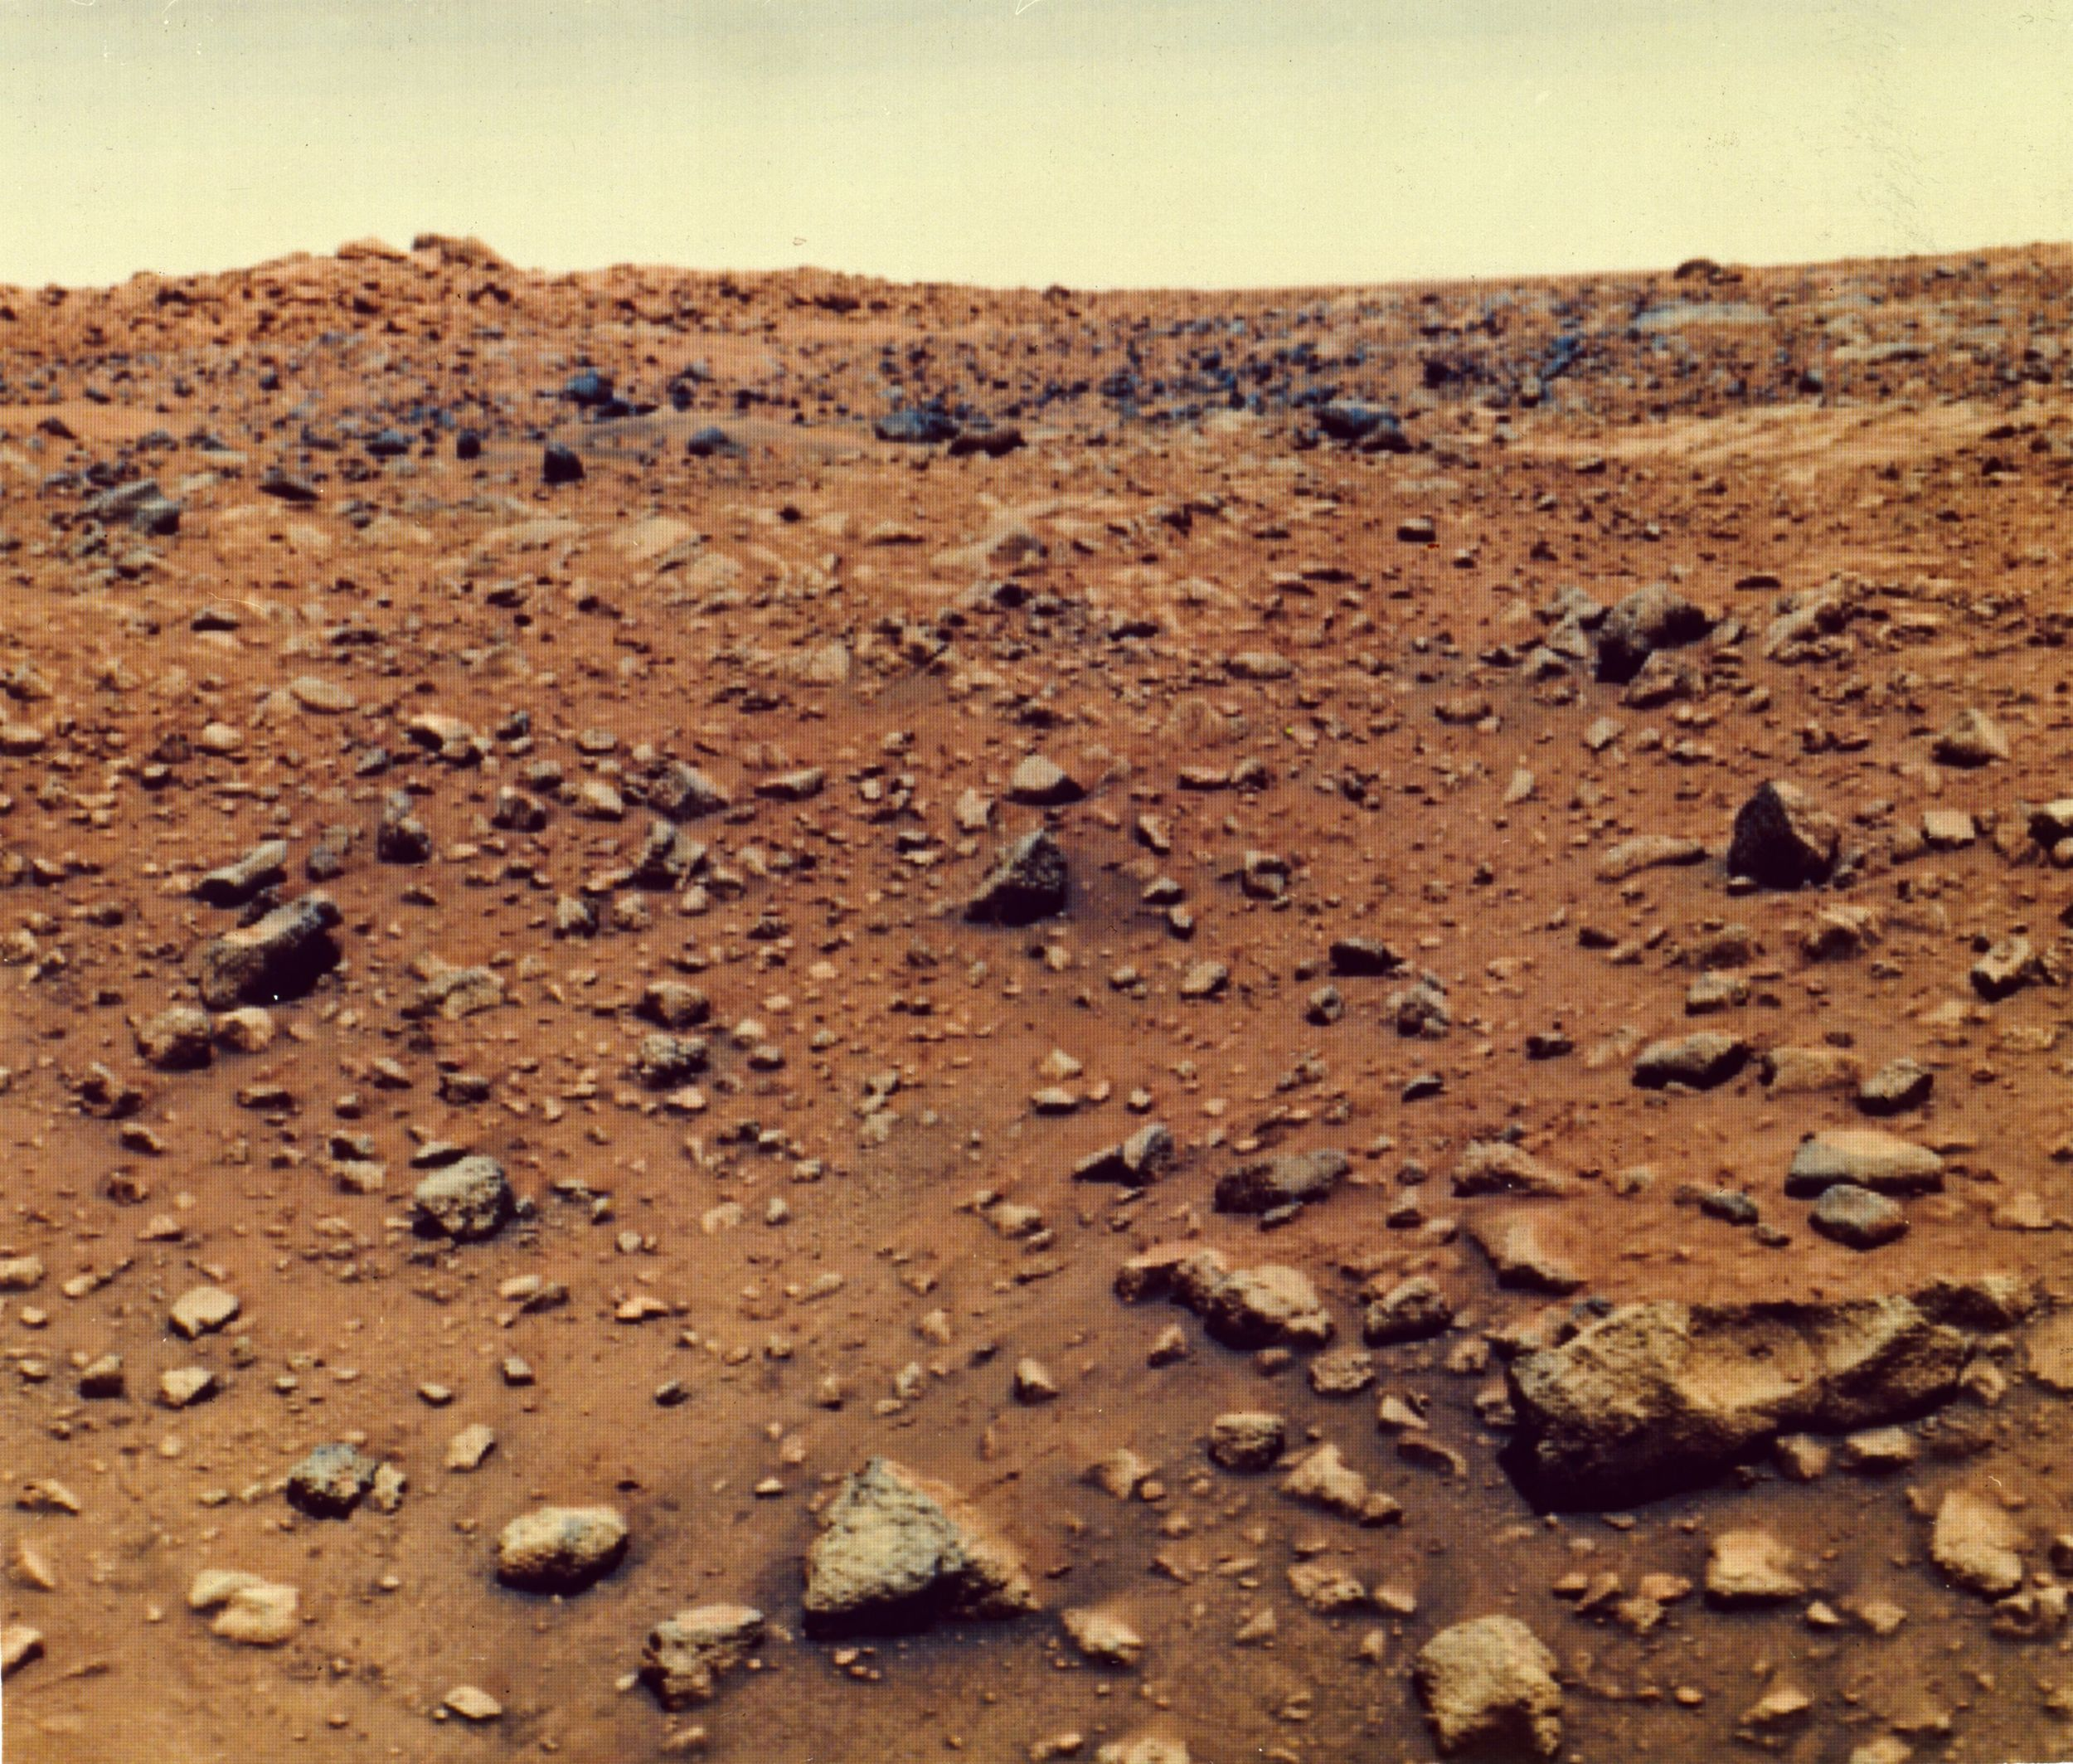 Remembering NASA's Viking 1 and the first images from Mars ...